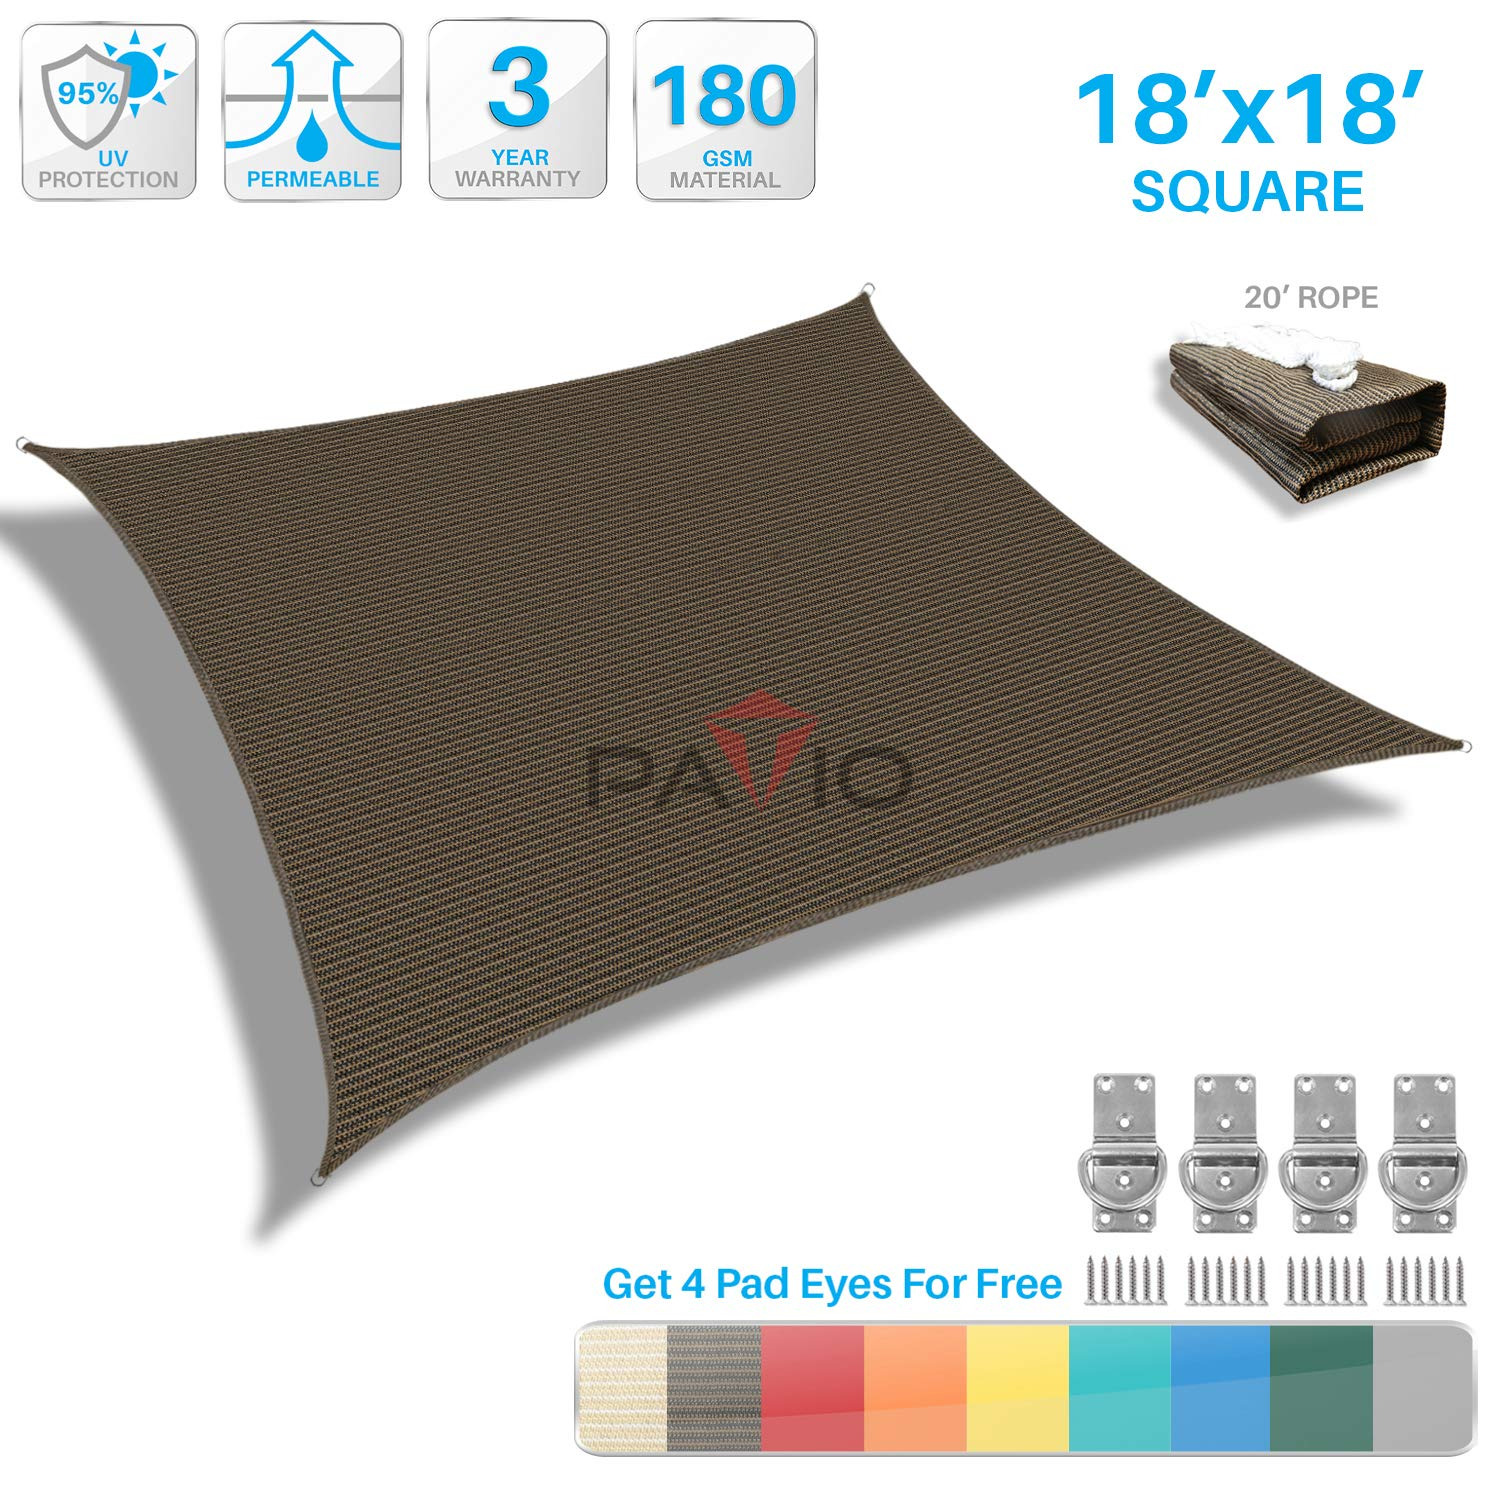 Patio Paradise 18' x 18' Brown Sun Shade Sail Square Canopy - Permeable UV Block Fabric Durable Outdoor - Customized Available